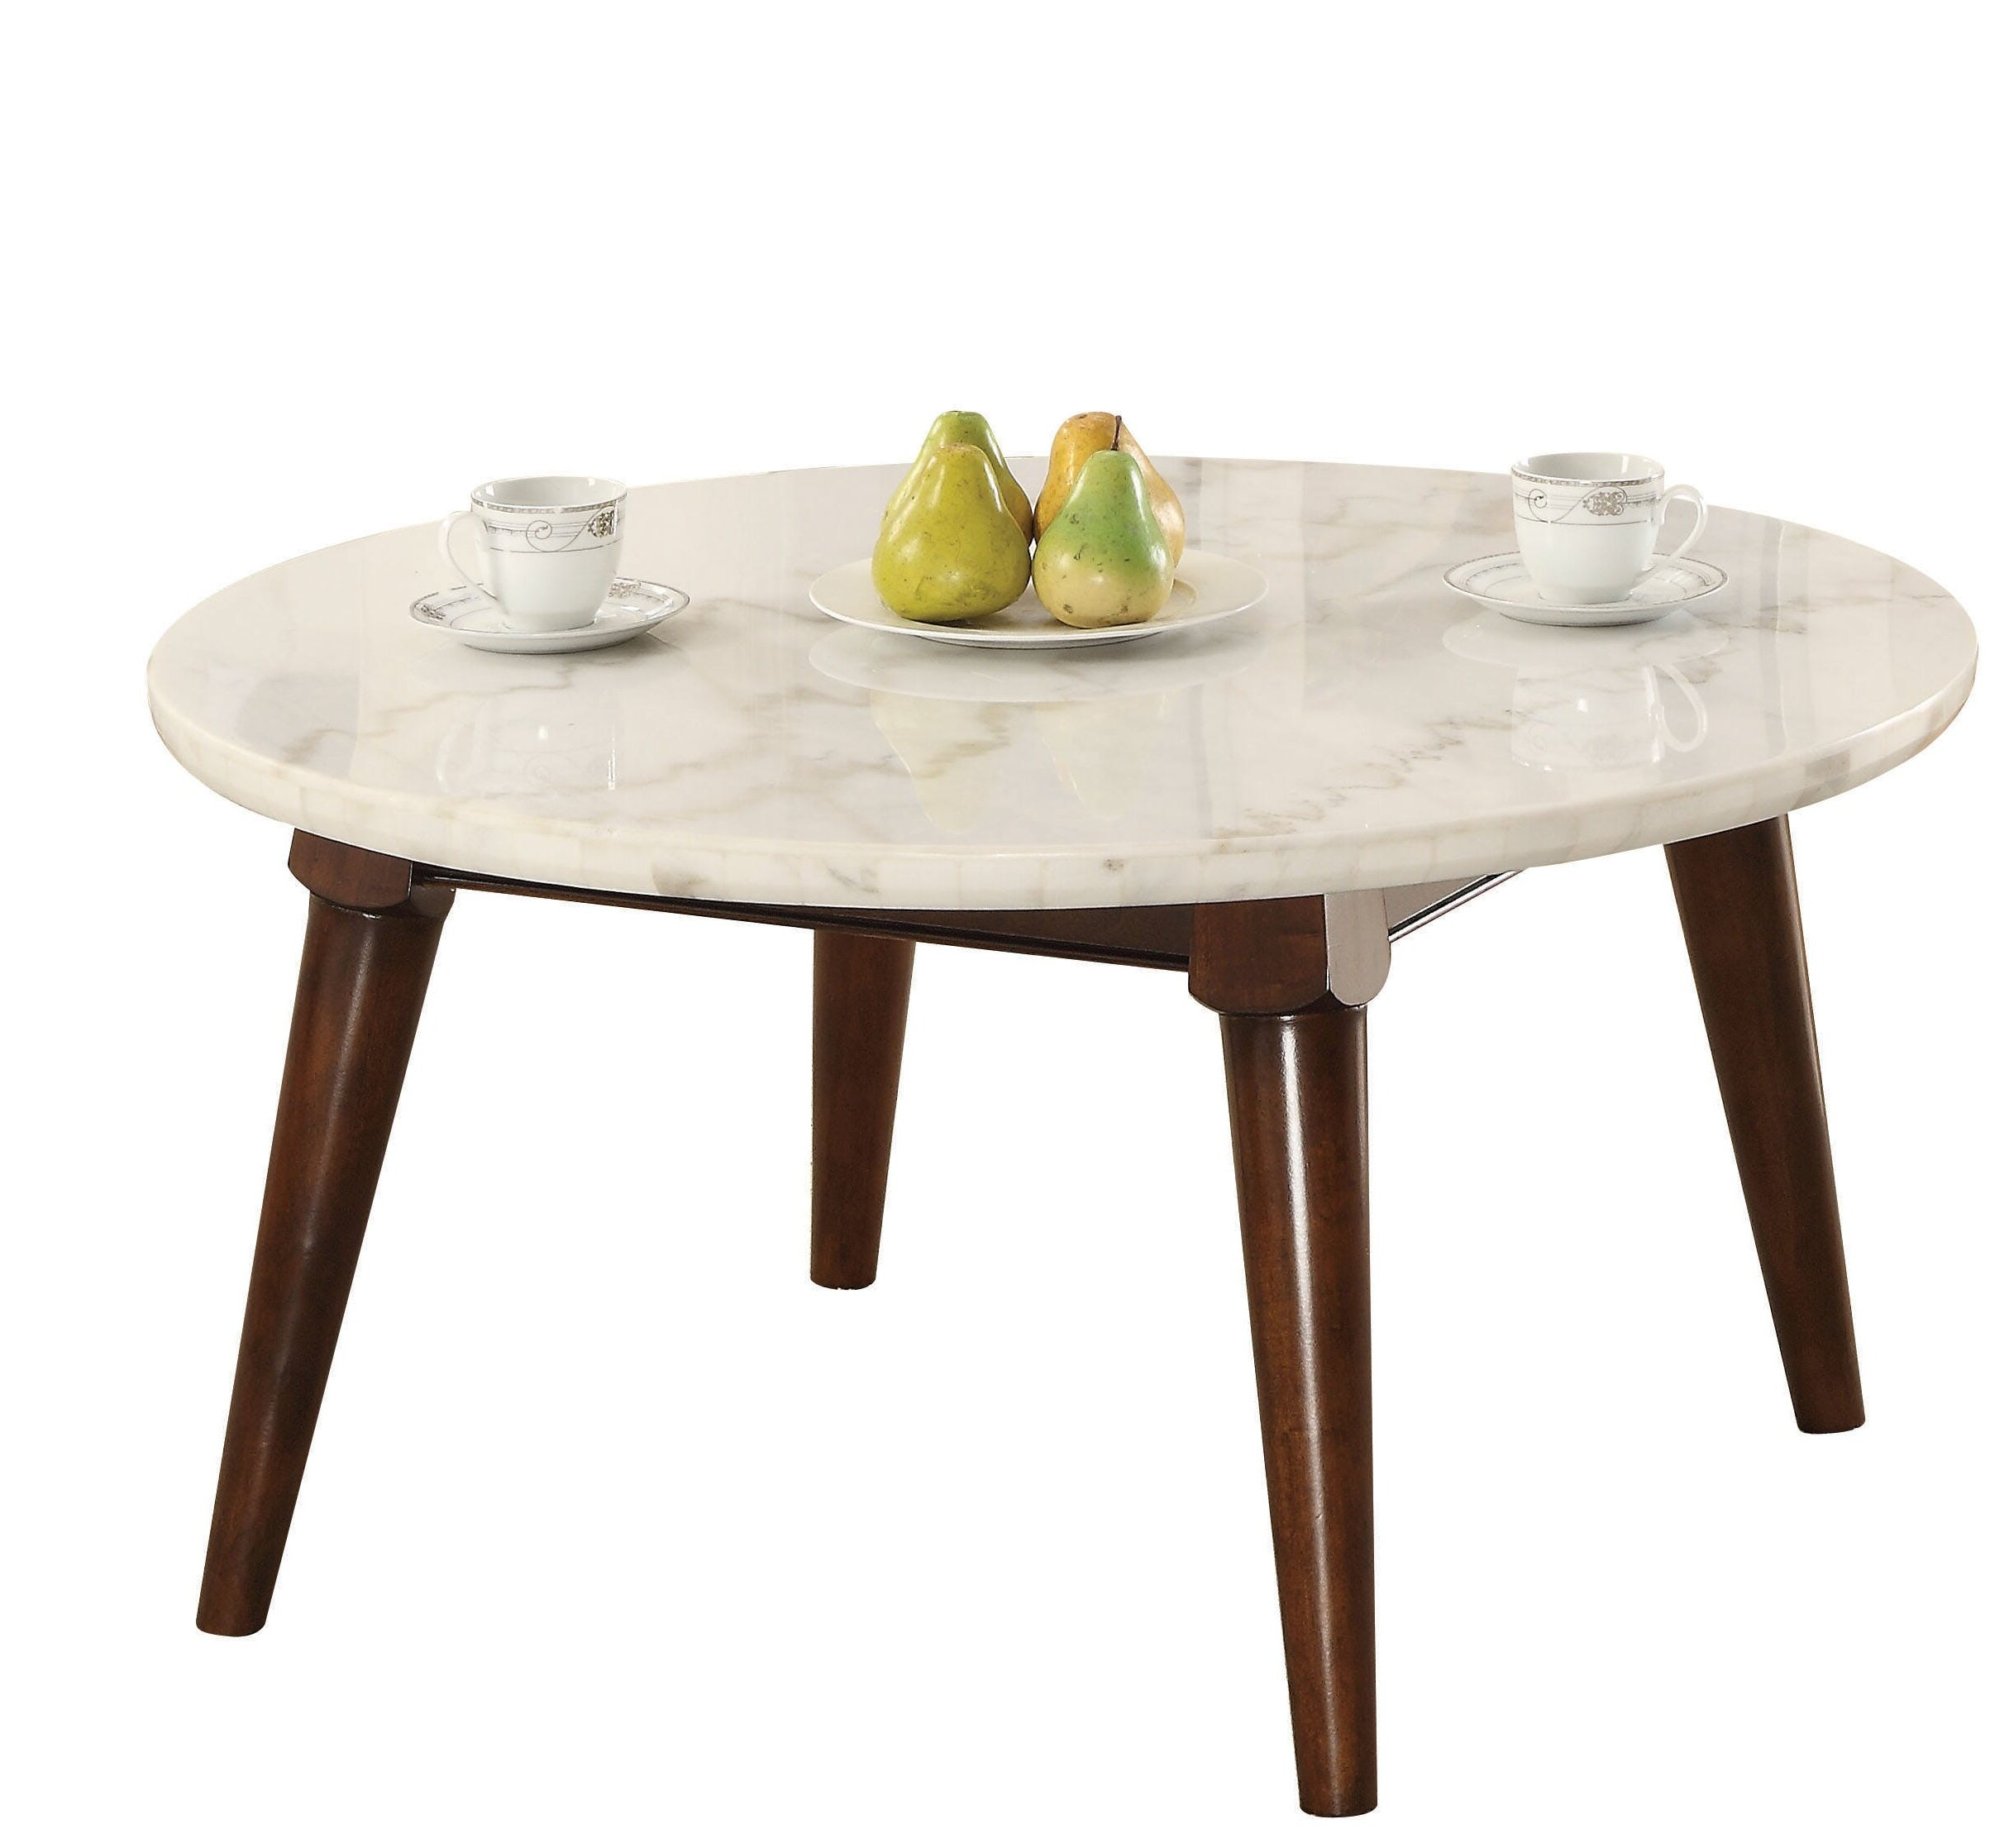 c80781e752c61a Ivy Bronx Calderdale Marble Top Wood Base Coffee Table | Wayfair